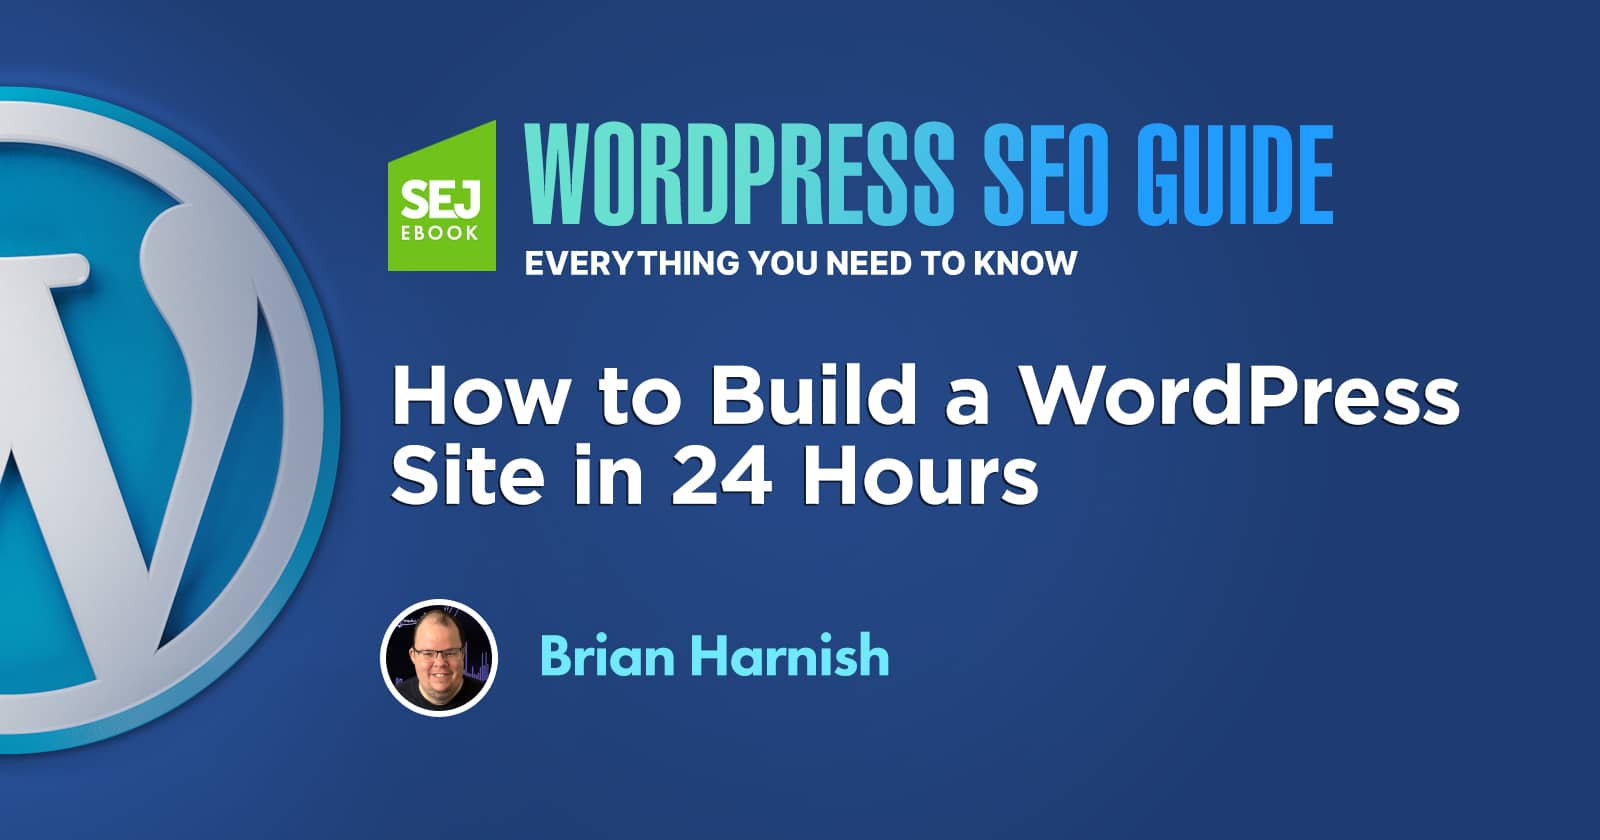 How to Build a WordPress Site in 24 Hours via @sejournal, @BrianHarnish